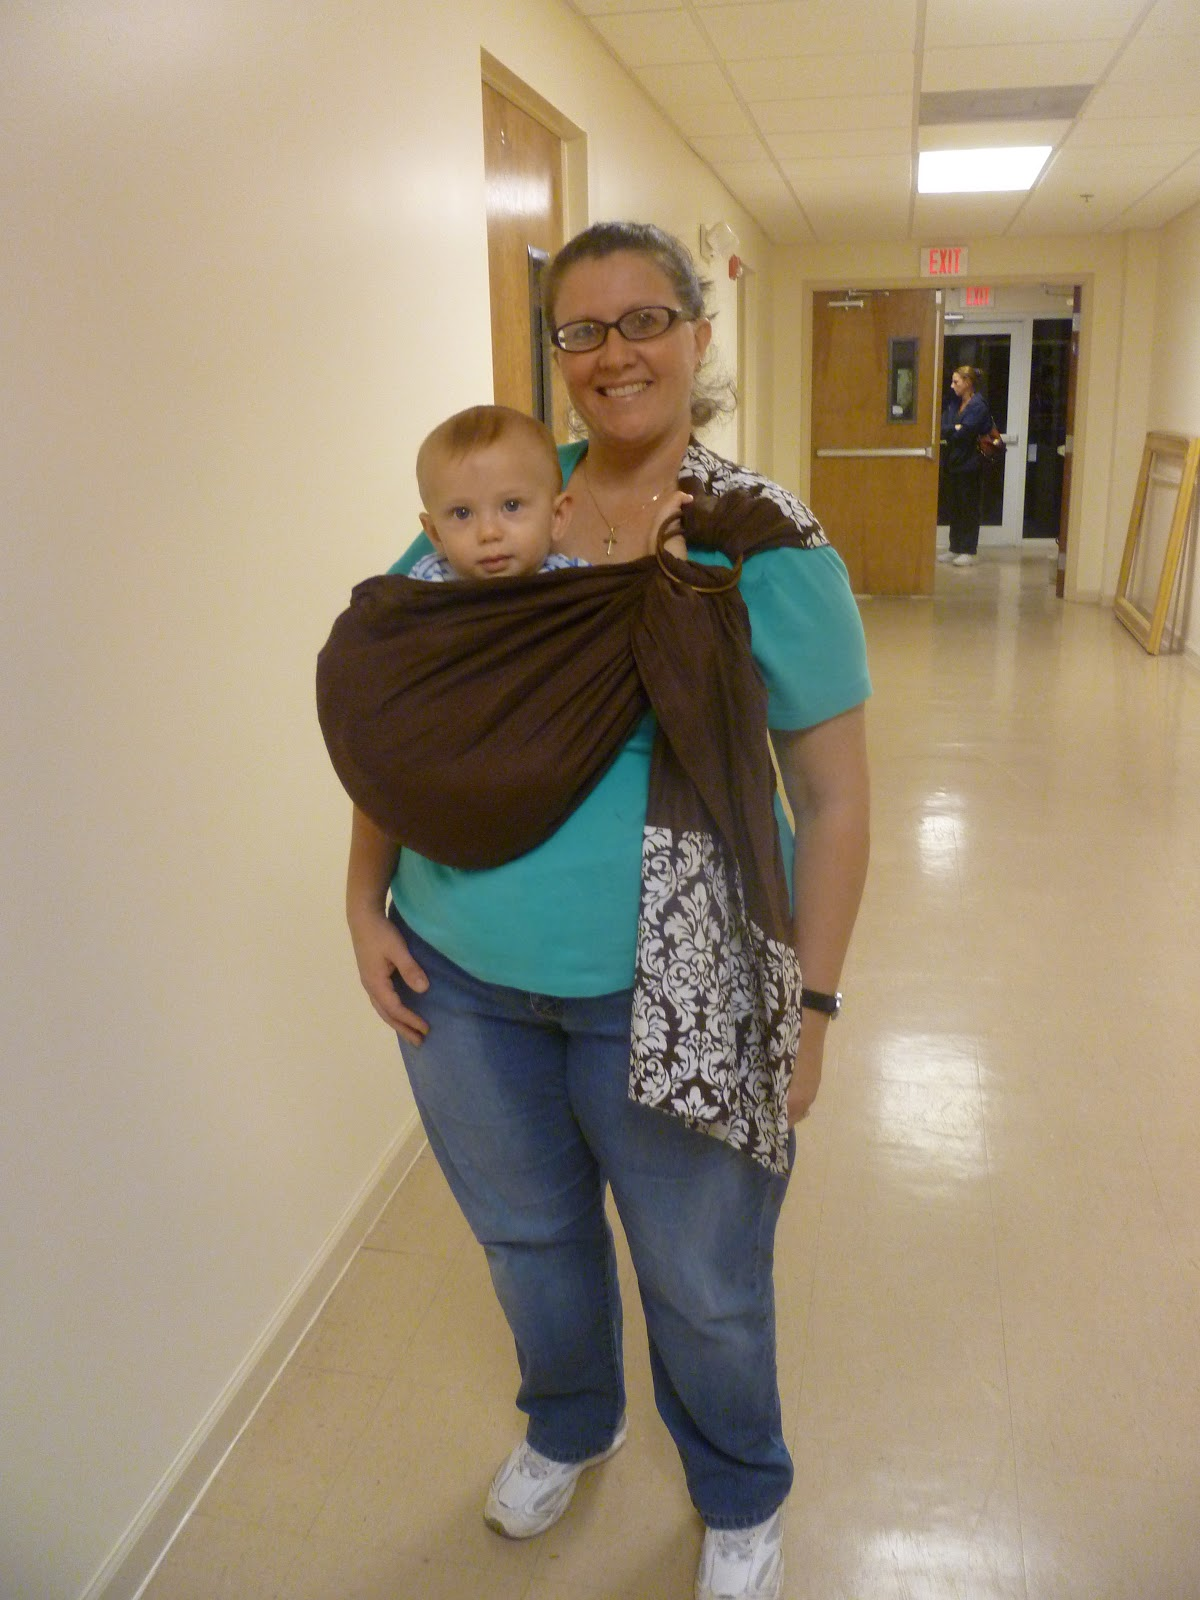 03d5ff69080 SNUGGY BABY RING SLING REVIEW +  75.00 GIFT CERTIFICATE GIVEWAY ...